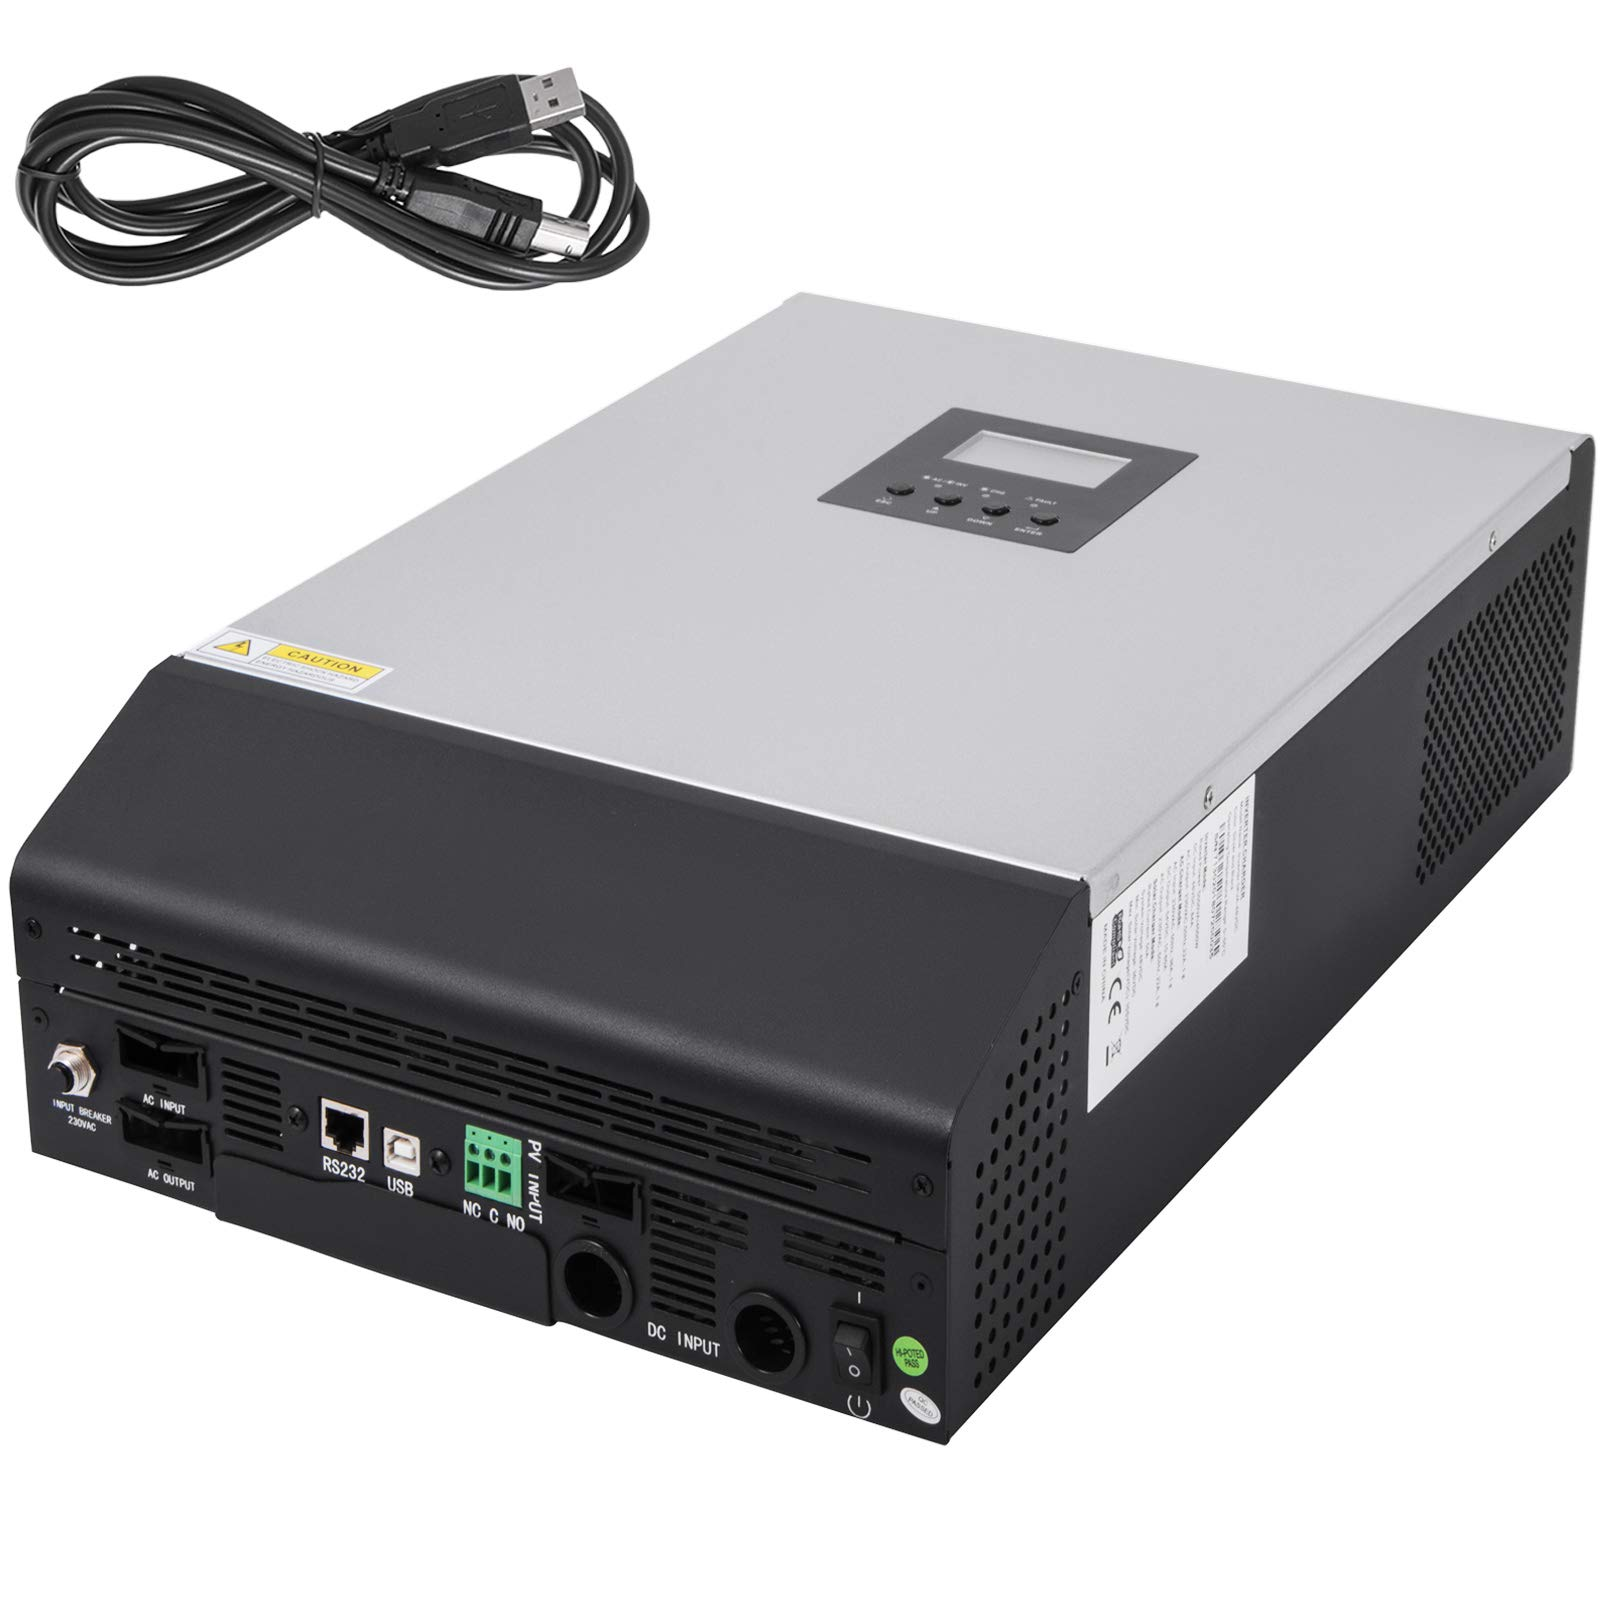 Mophorn Solar Pure Sine Wave Power Inverter 5000W 50A Solar Charger DC 48V AC Output 230V with 60A Utility Charger 50HZ